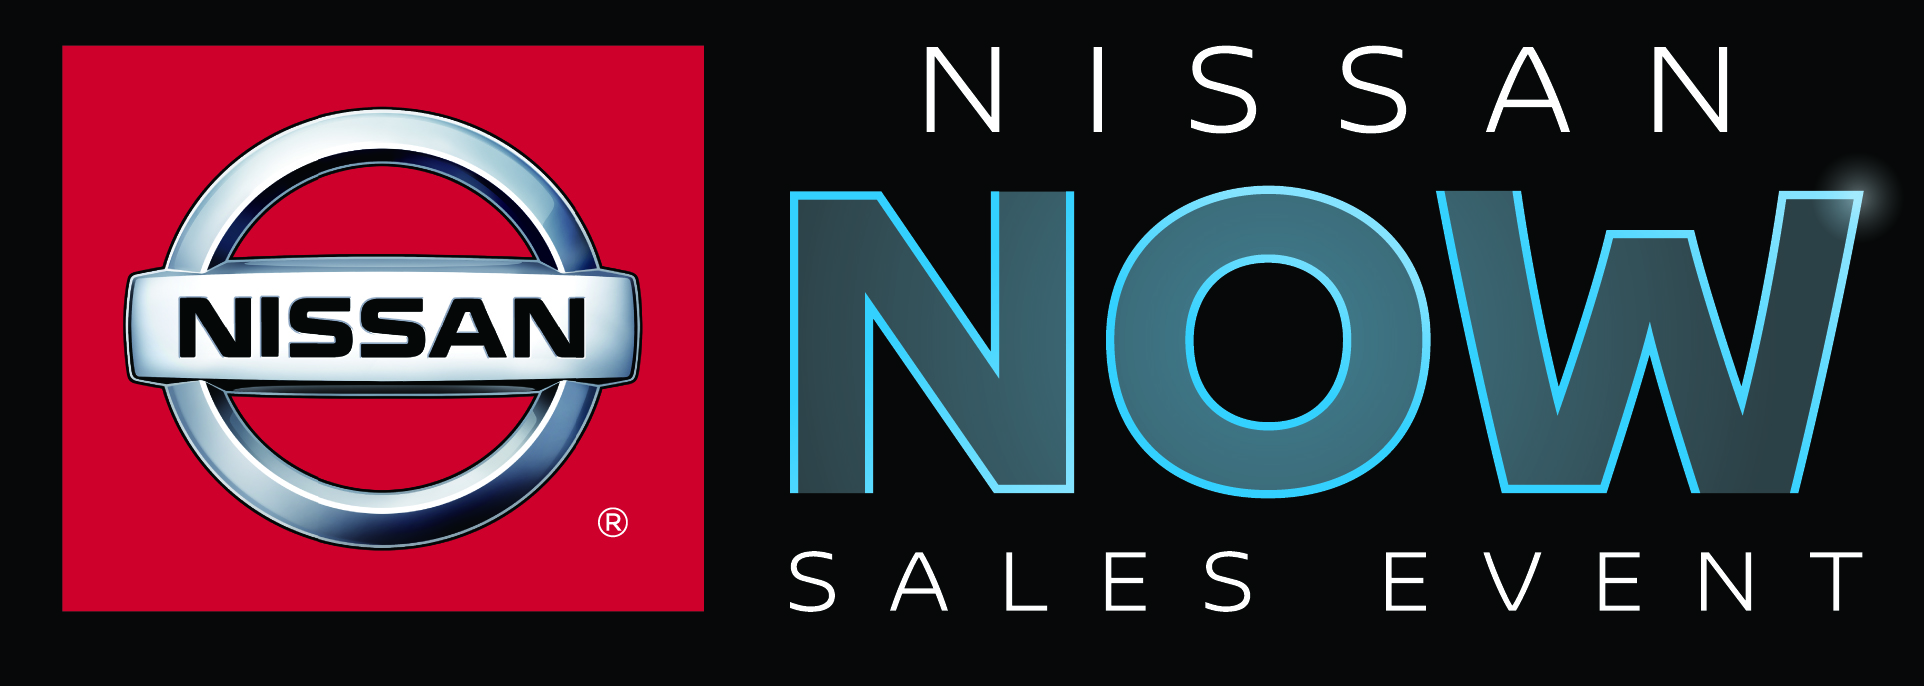 Nissan Now Sales Event.jpg